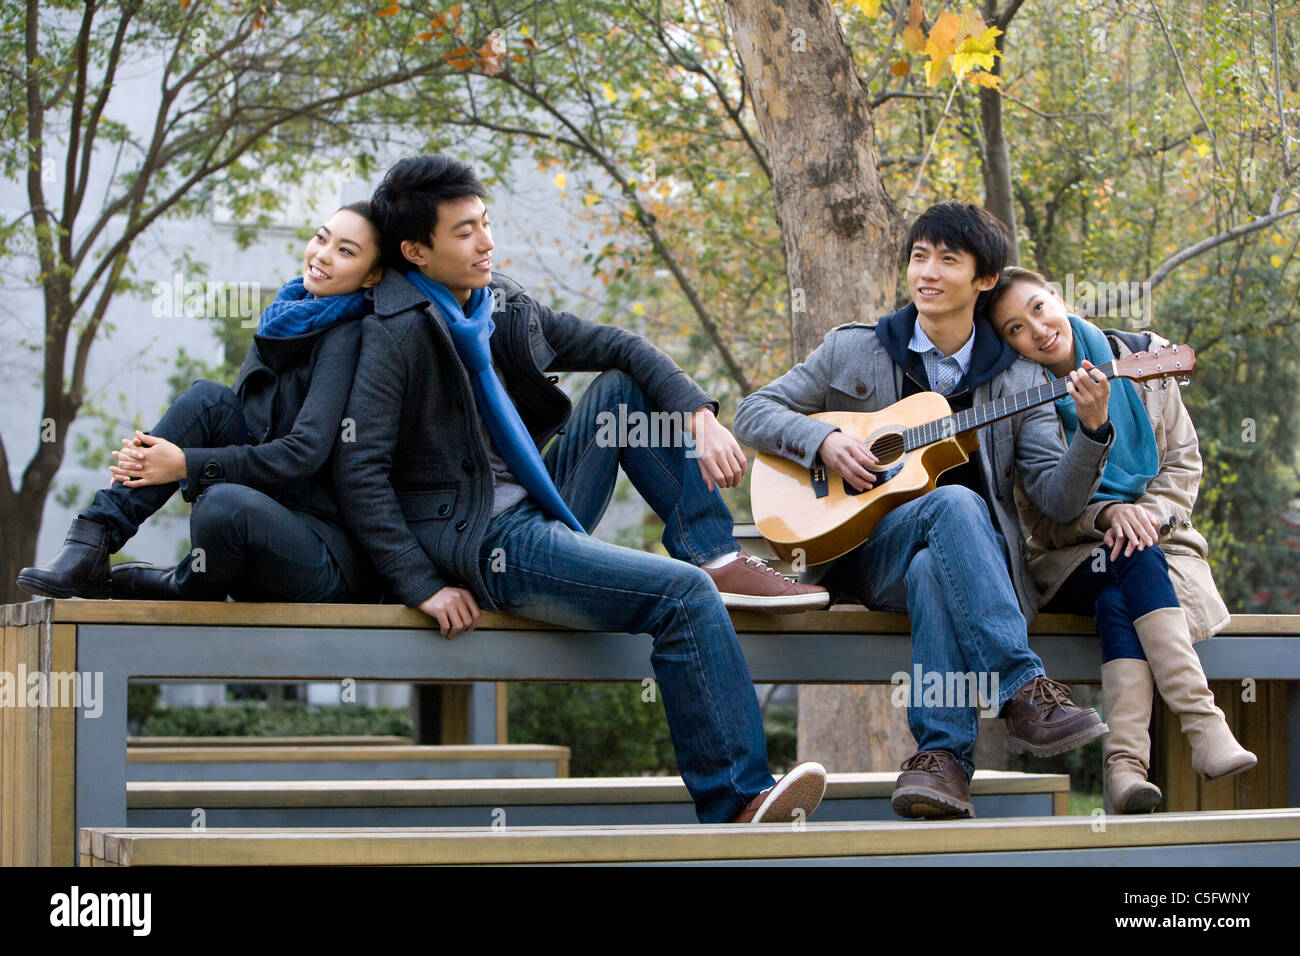 Two couples sit on a park bench and listen to a friend play guitar - Stock Image